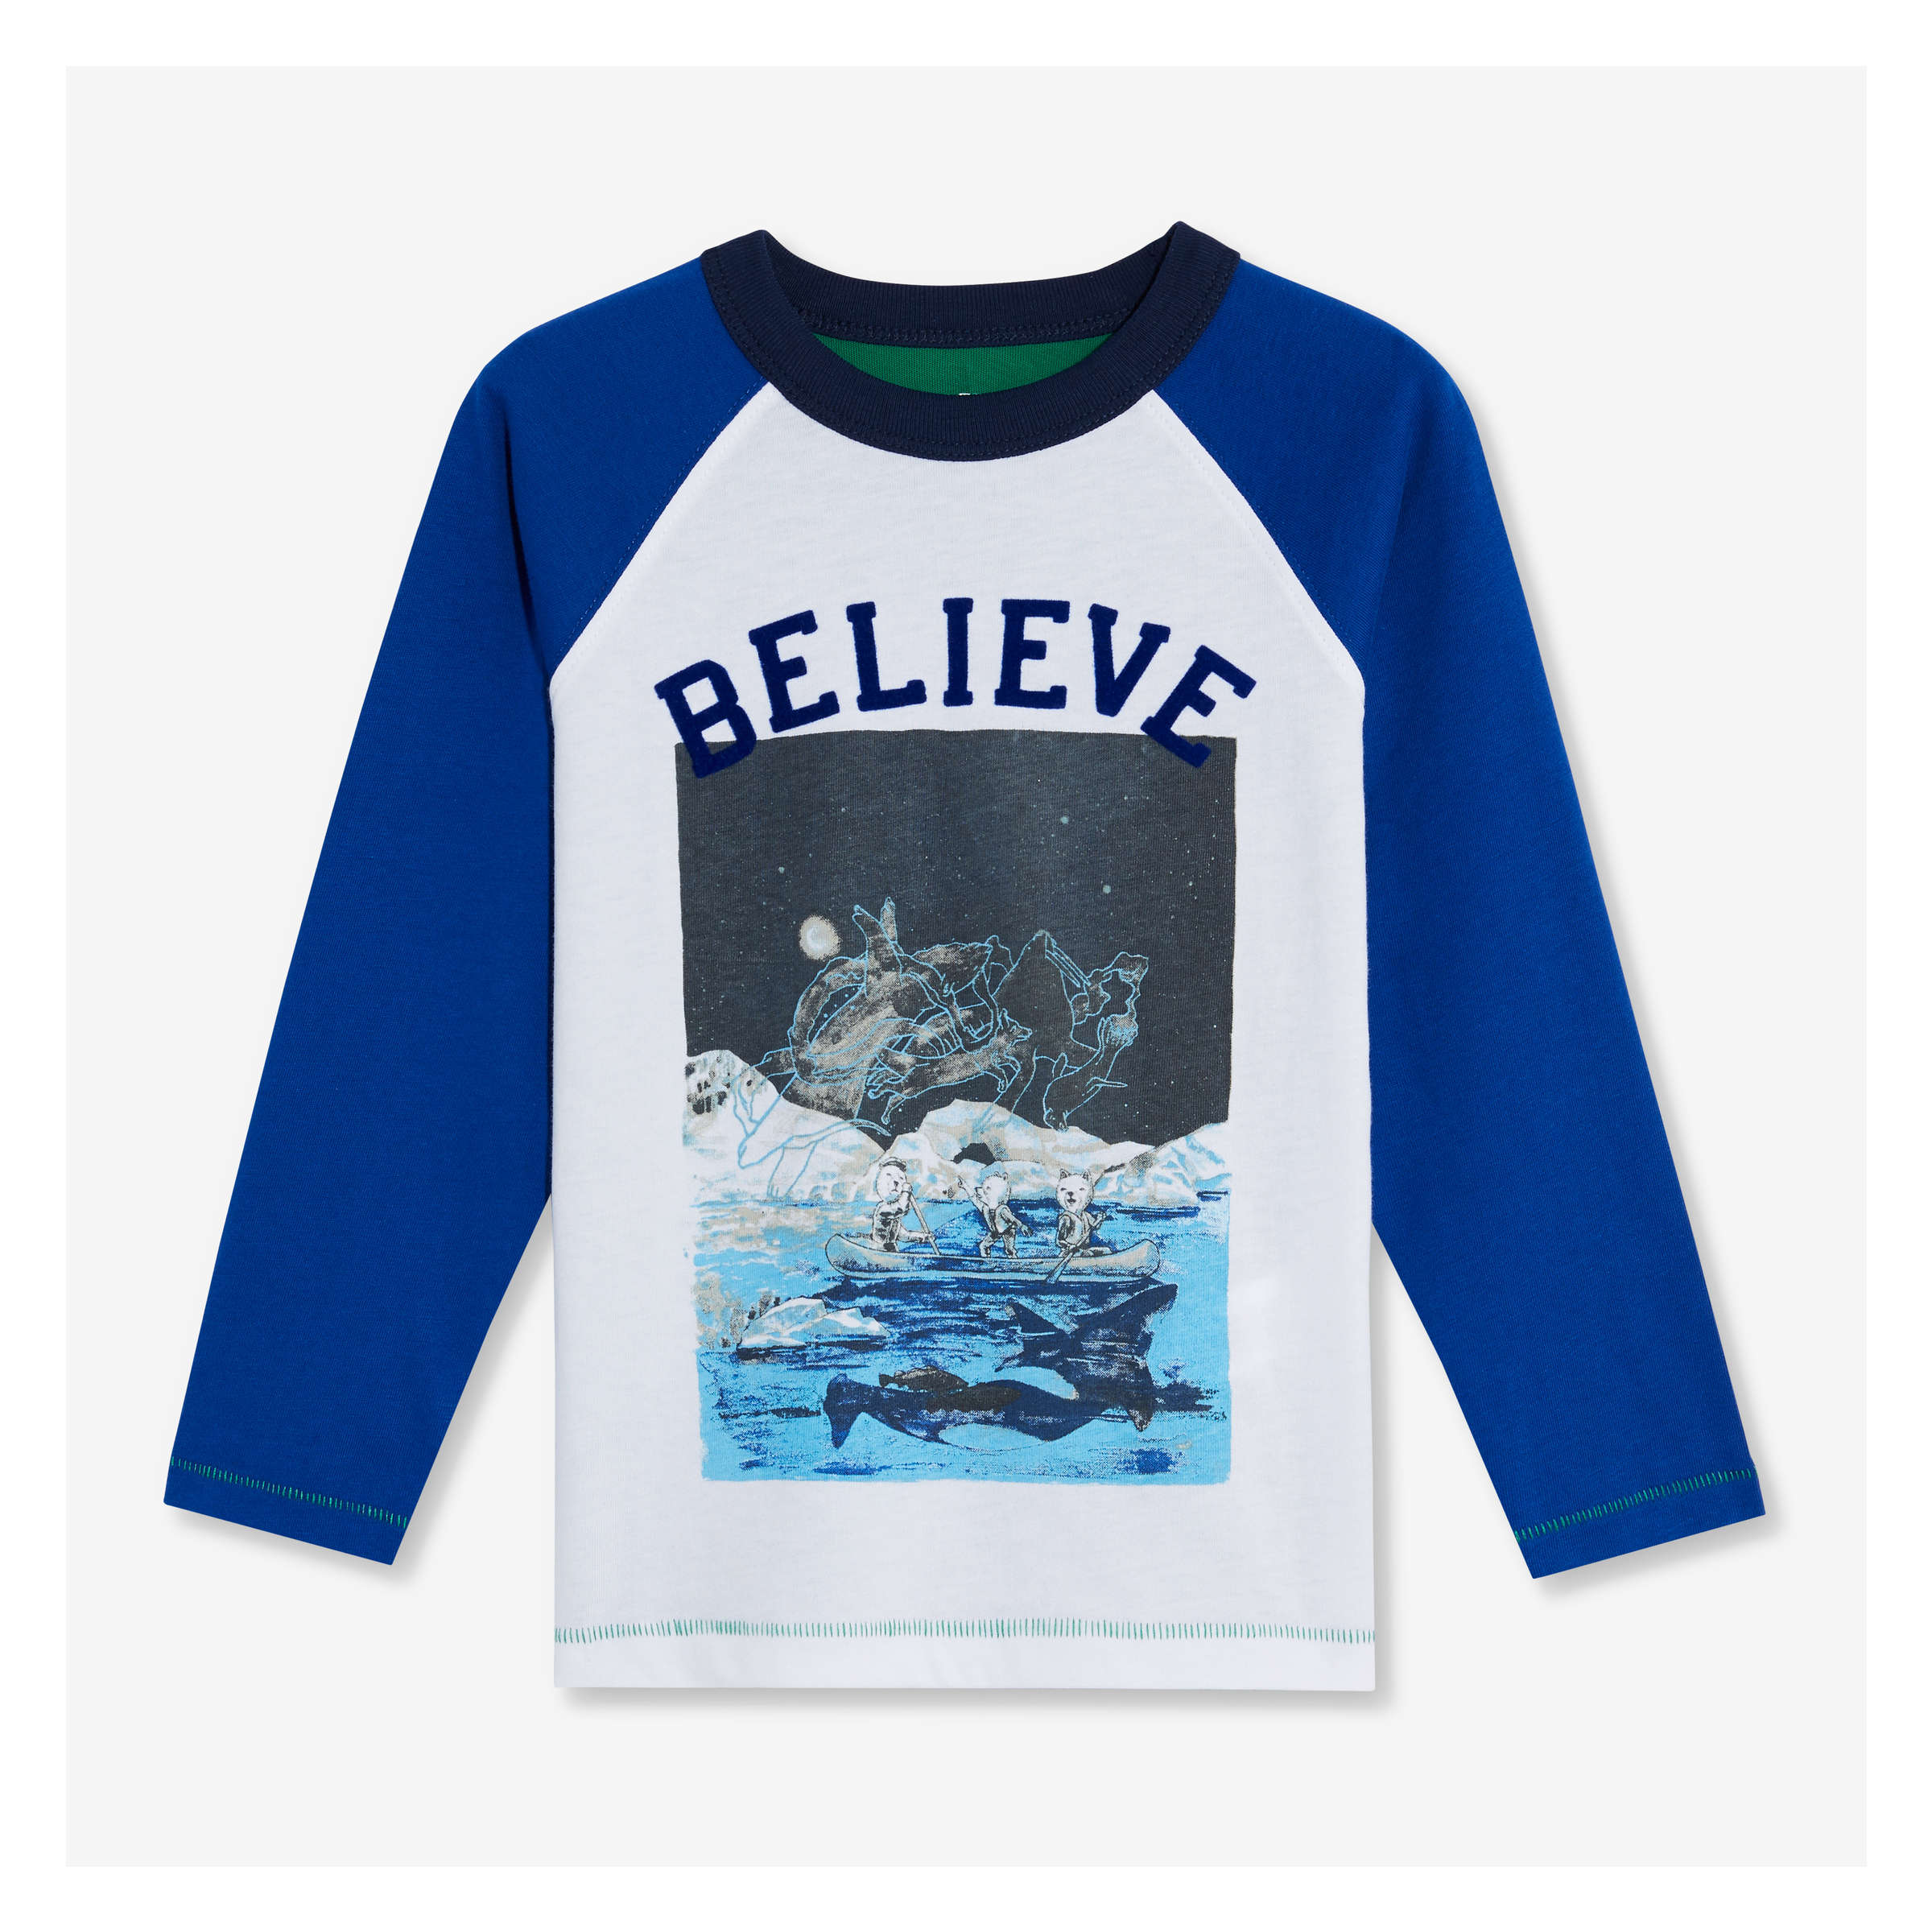 8905daa5a Toddler Boys' Graphic Raglan Tee in Royal Blue from Joe Fresh